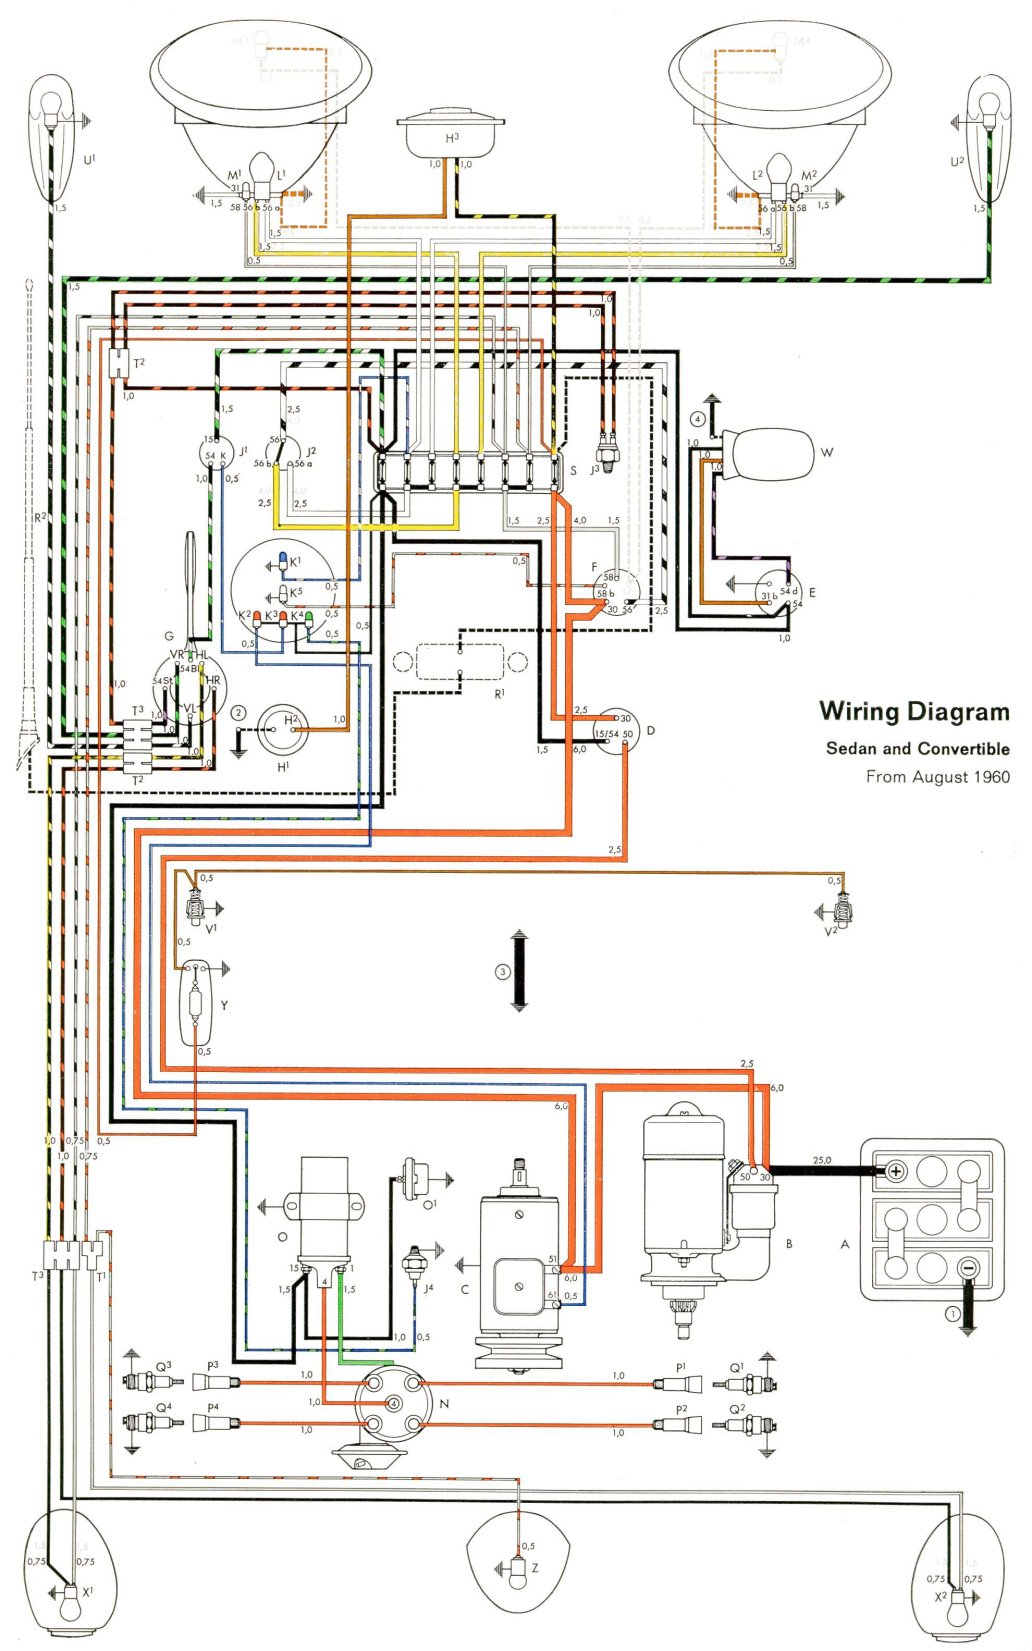 bug_61 dune buggy wiring diagram dune buggy wiring diagram color code dune buggy wiring diagram at webbmarketing.co